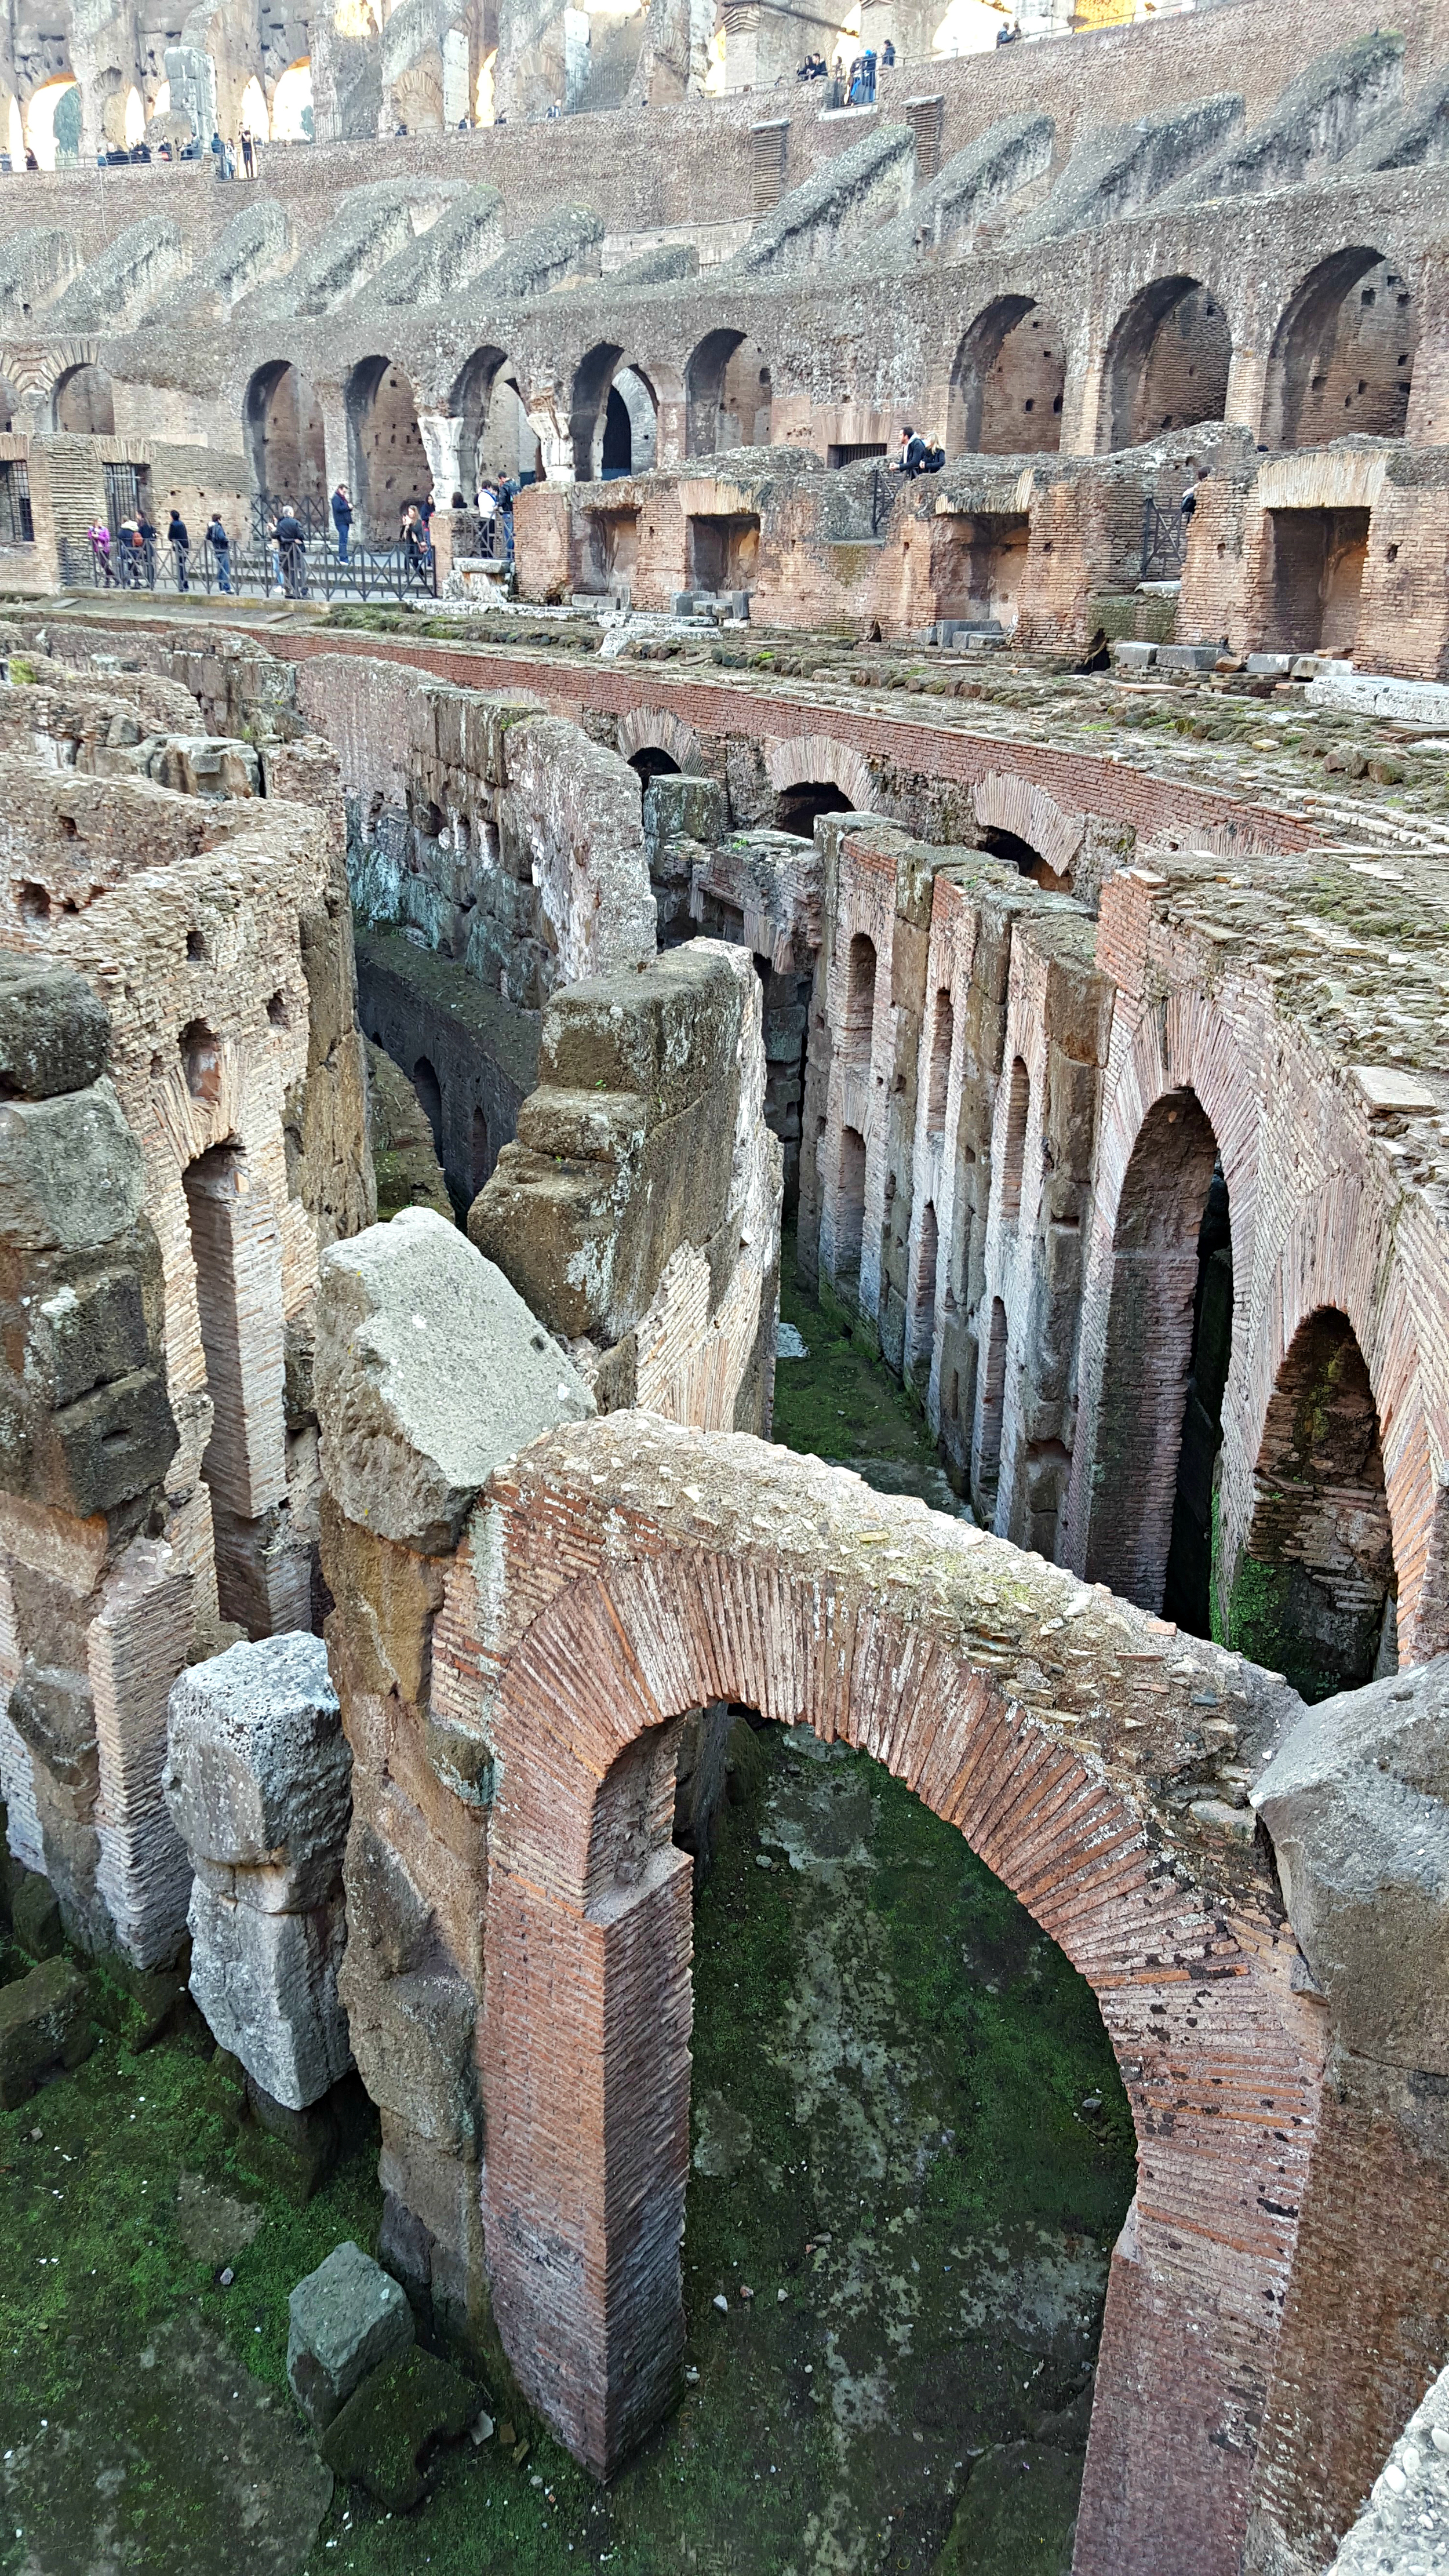 Rows of cages and passages - the Colosseum (2).jpg